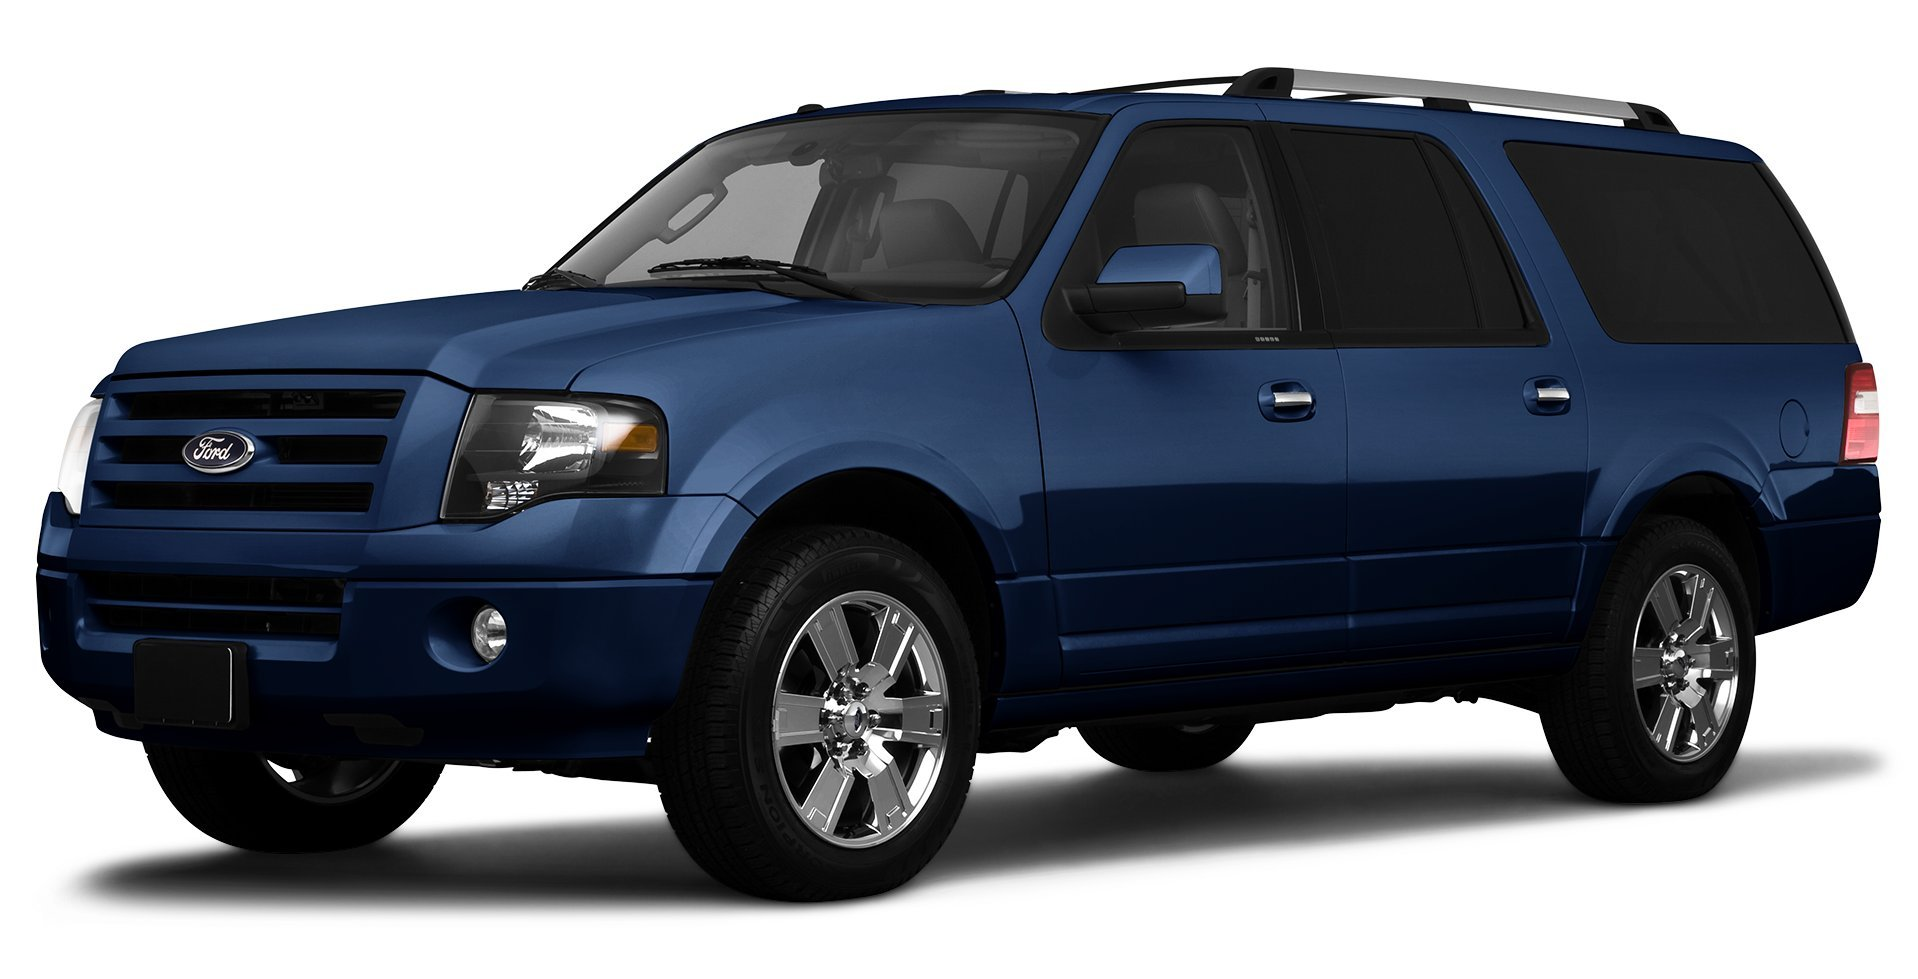 2010 nissan armada reviews images and specs vehicles. Black Bedroom Furniture Sets. Home Design Ideas